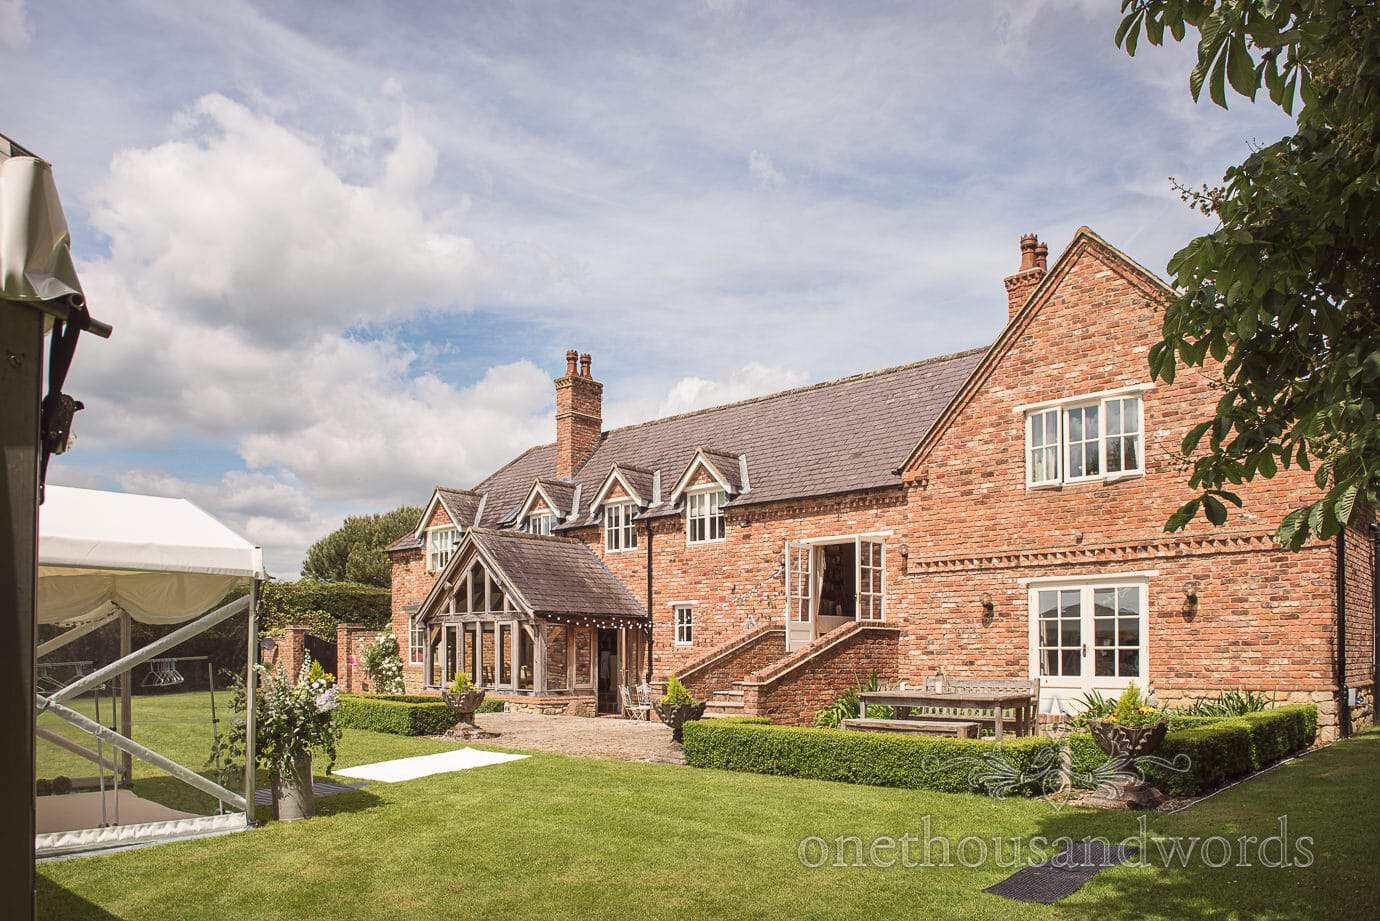 Country House wedding venue in Tur Langton Leicestershire in summer sun